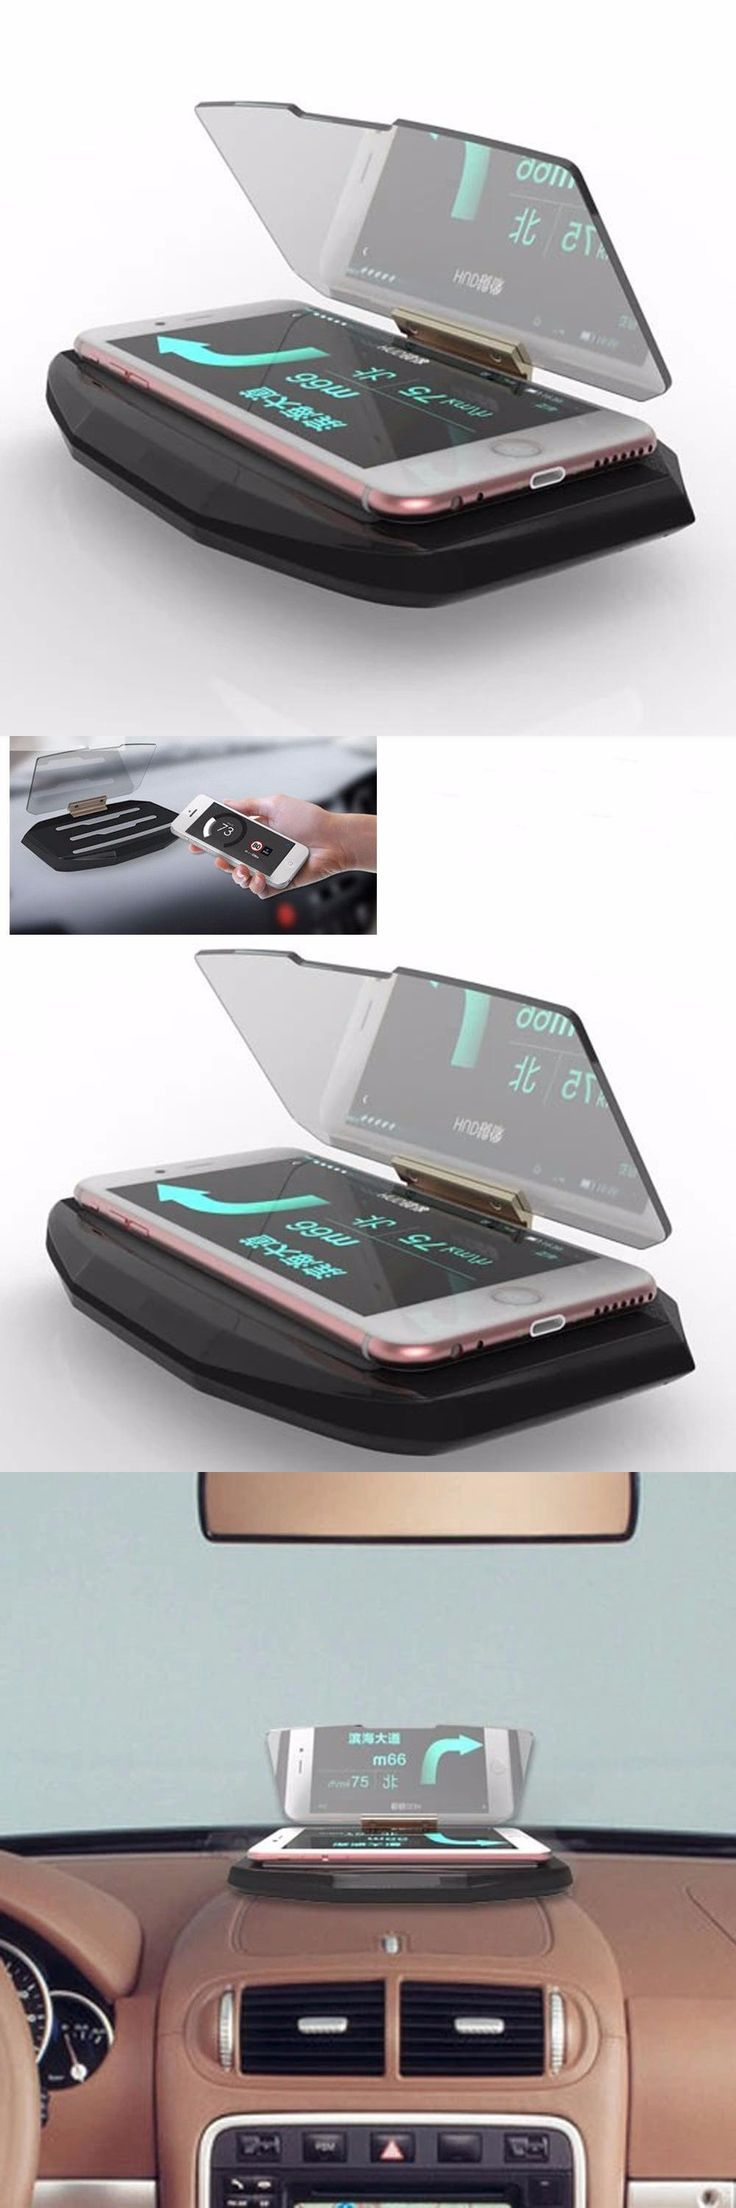 visit to buy 2016 new universal car mount holder magnetic air vent cradle grip